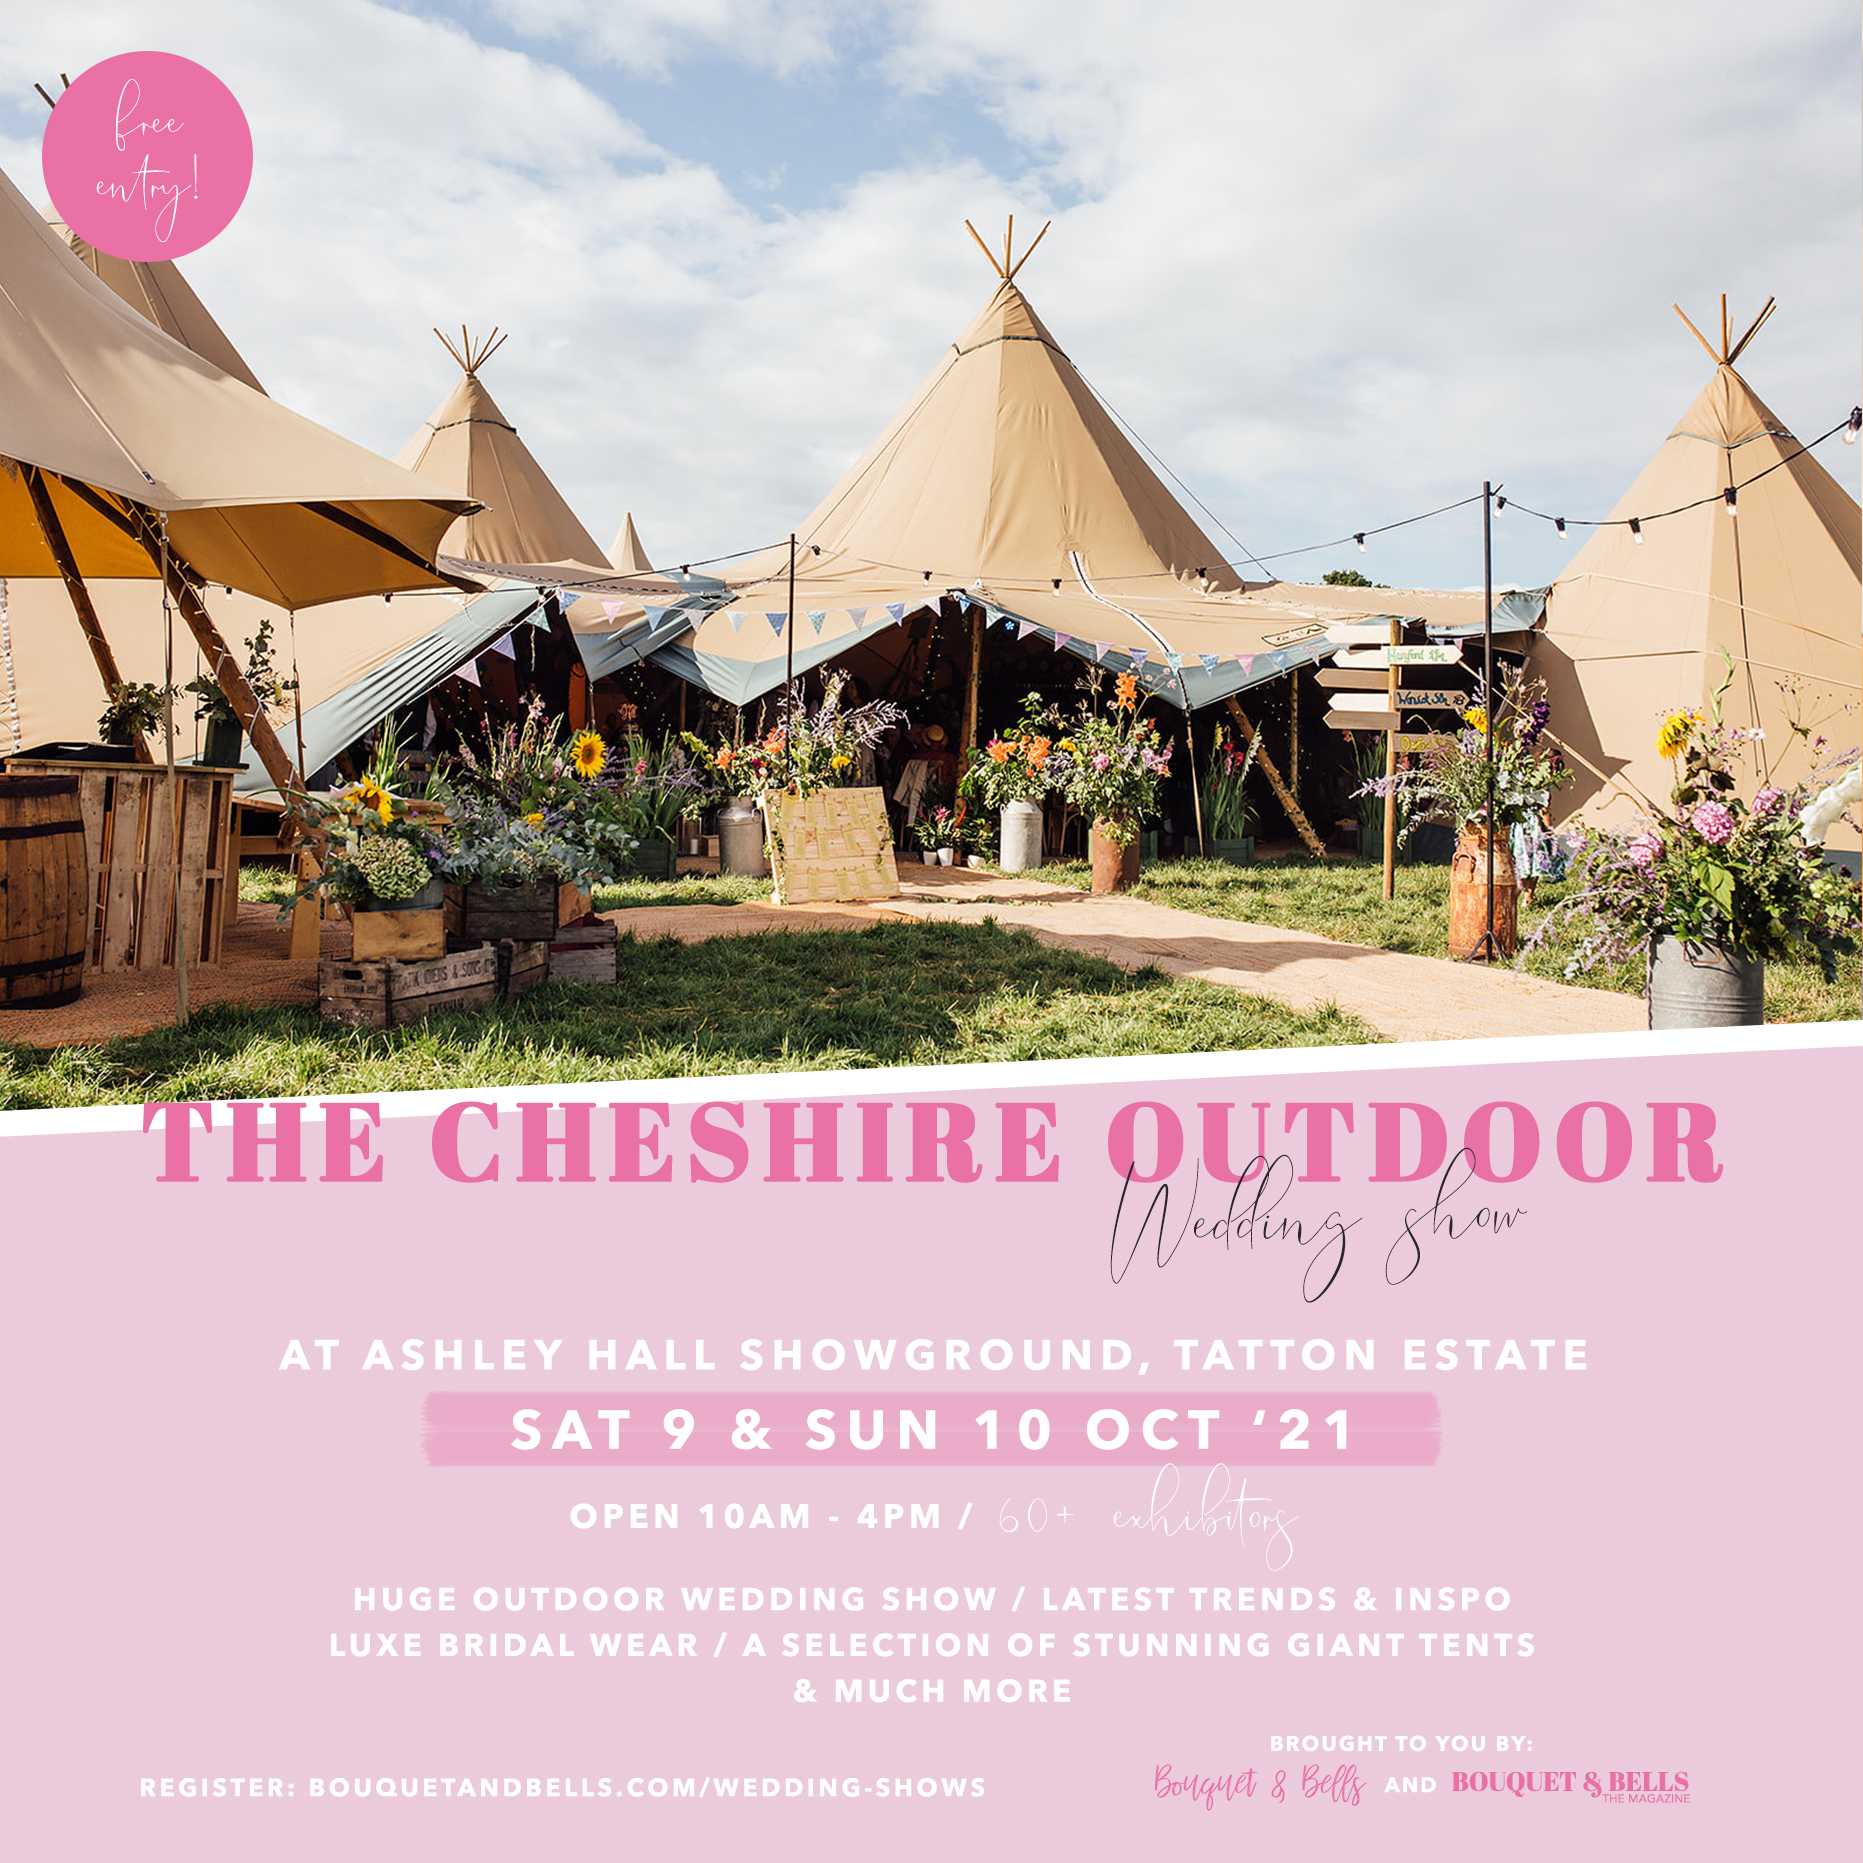 the-cheshire-outdoor-wedding-show-ashley-hall-showground-tatton-estate-bouquet-and-bells